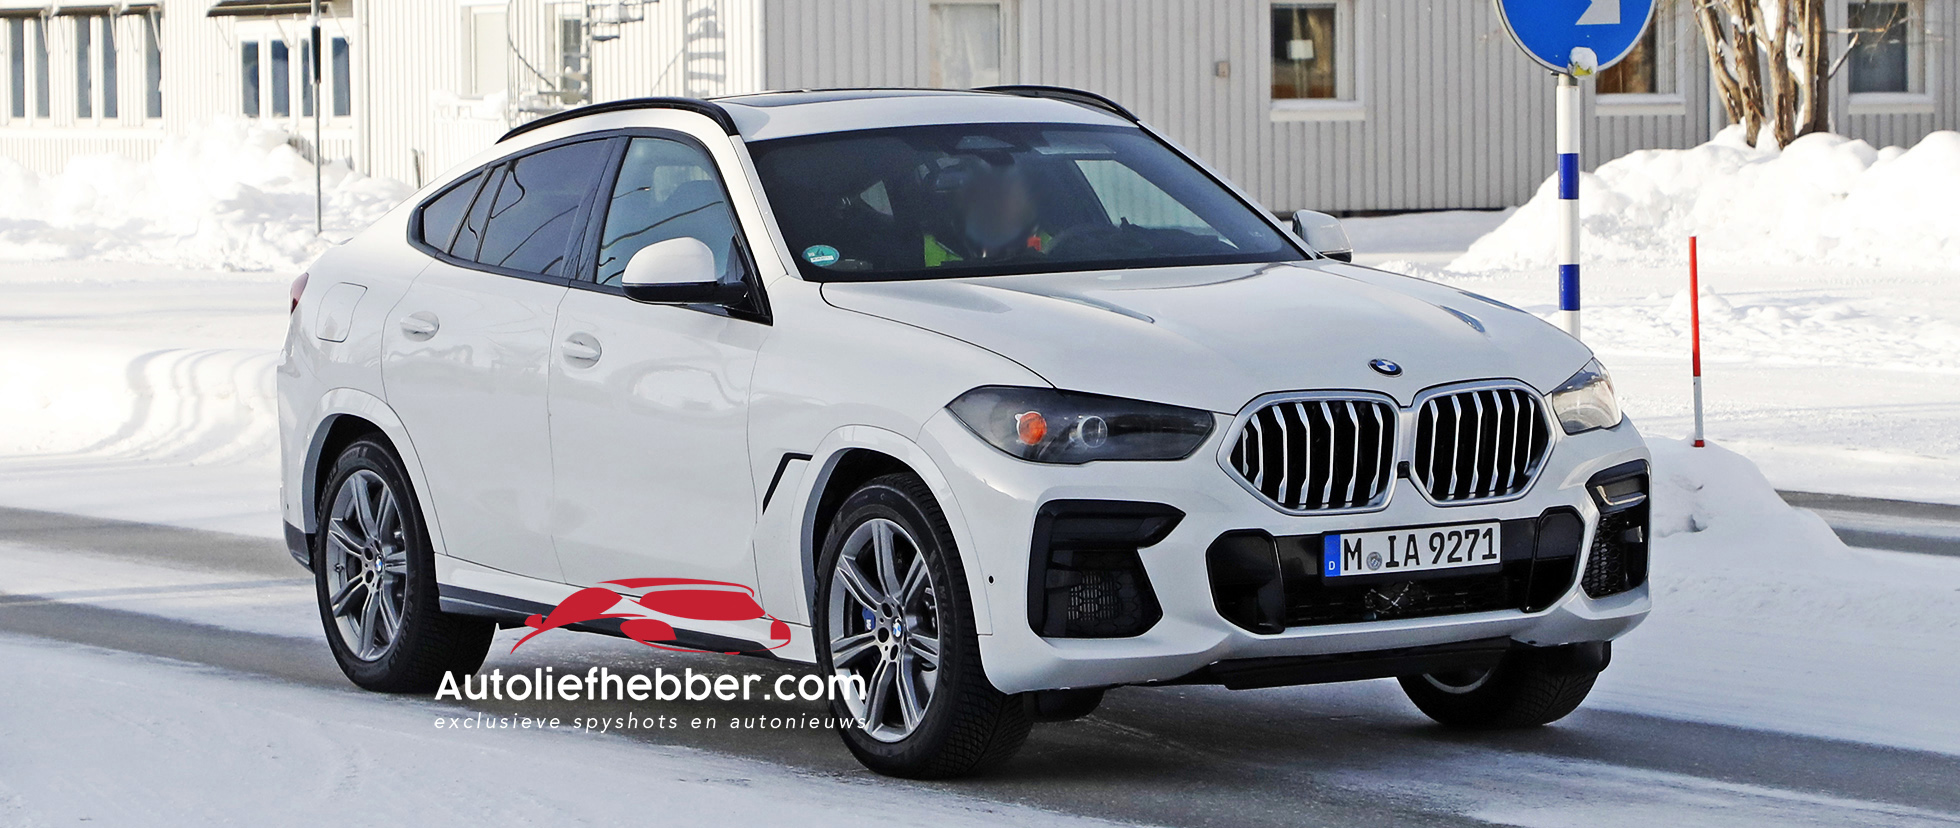 BMW X6 Facelift betrapt